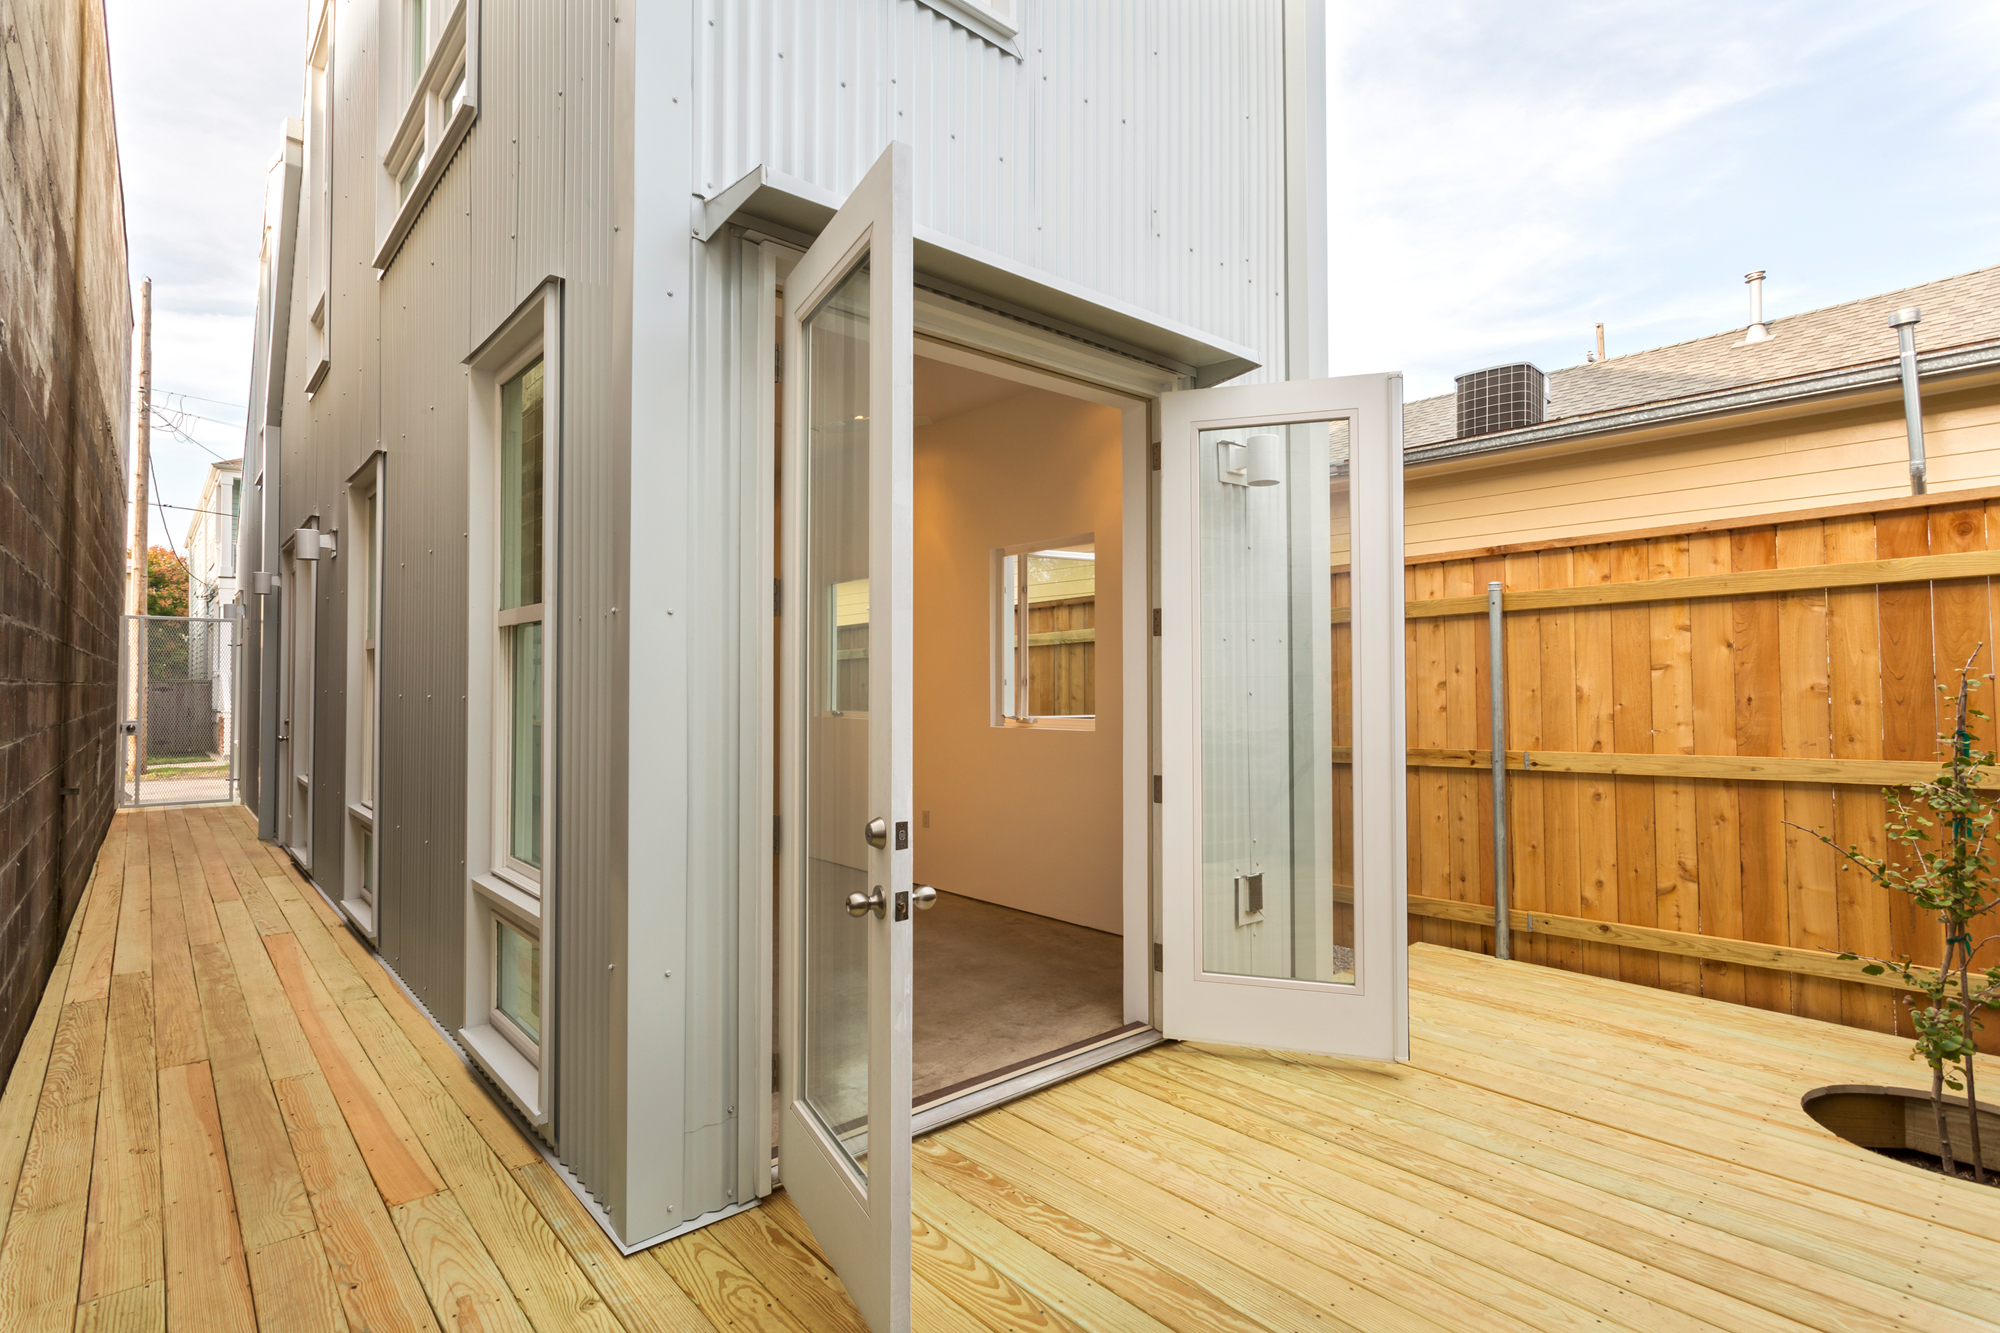 The elevated deck behind the Starter Home* in New Orleans by architect OJT, Office of Jonathan Tate